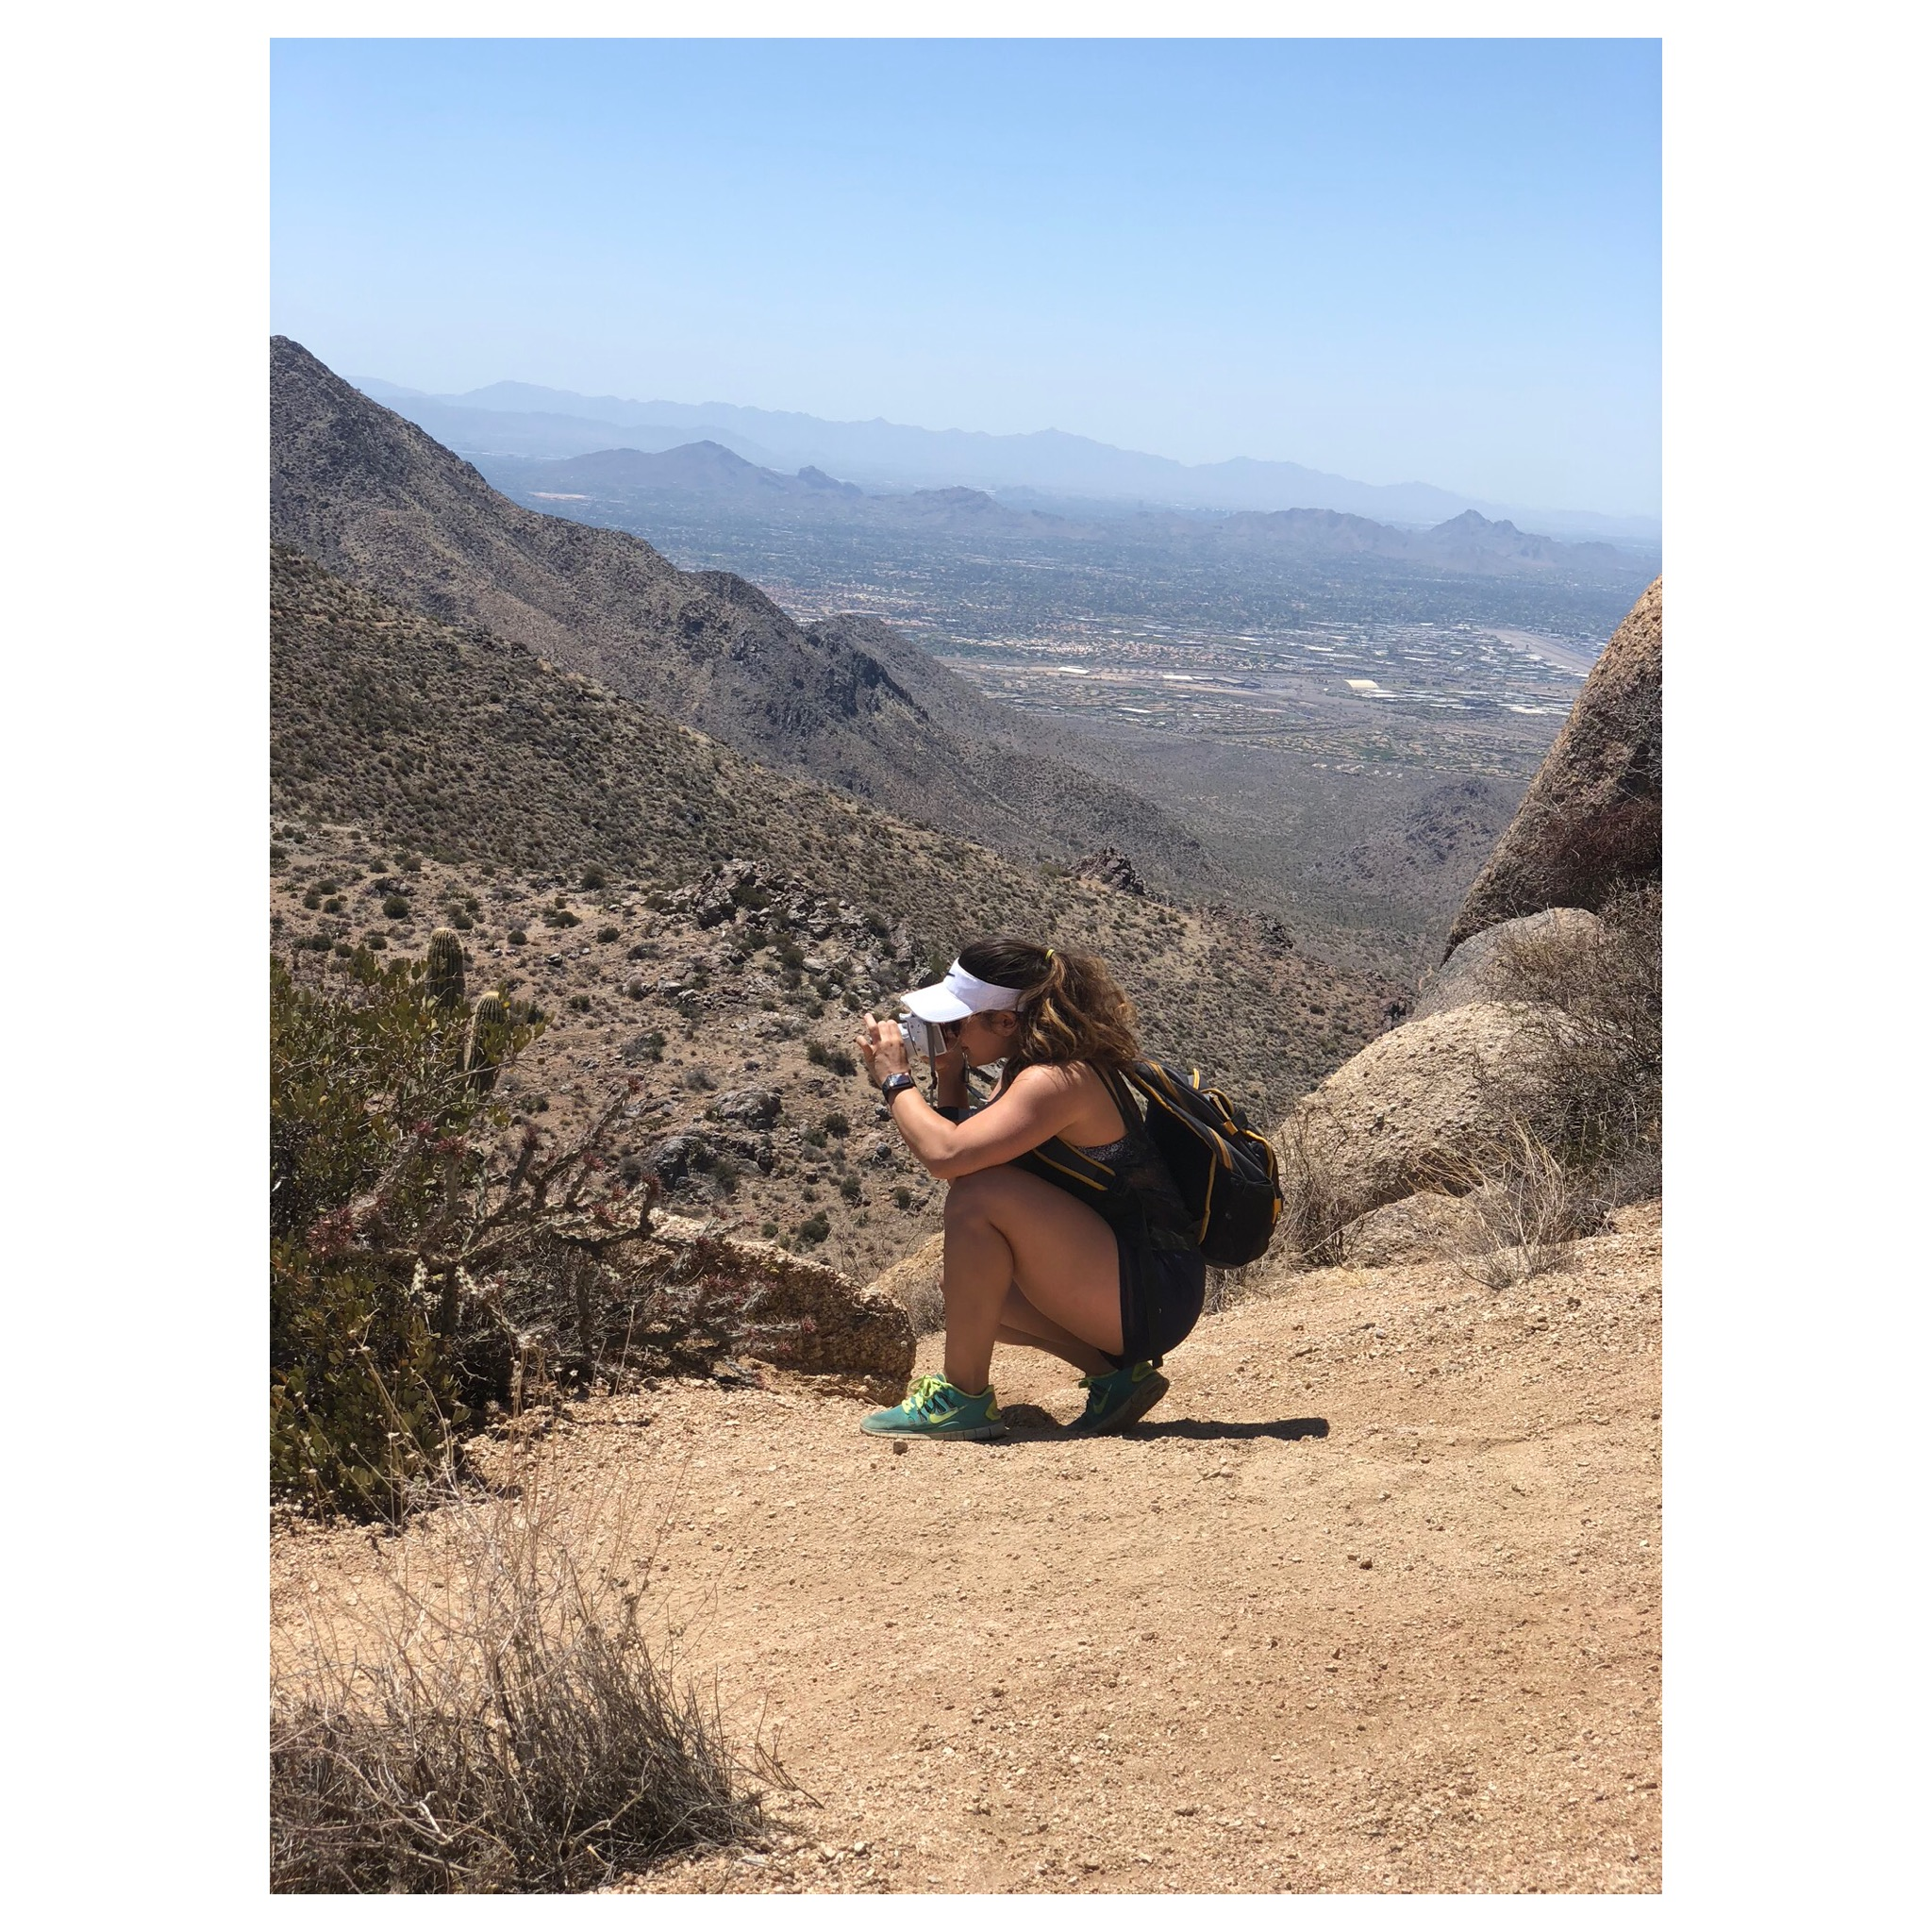 One thing about me you didn't know!  I love to hike, take photos of nature, and be outdoors when I can.